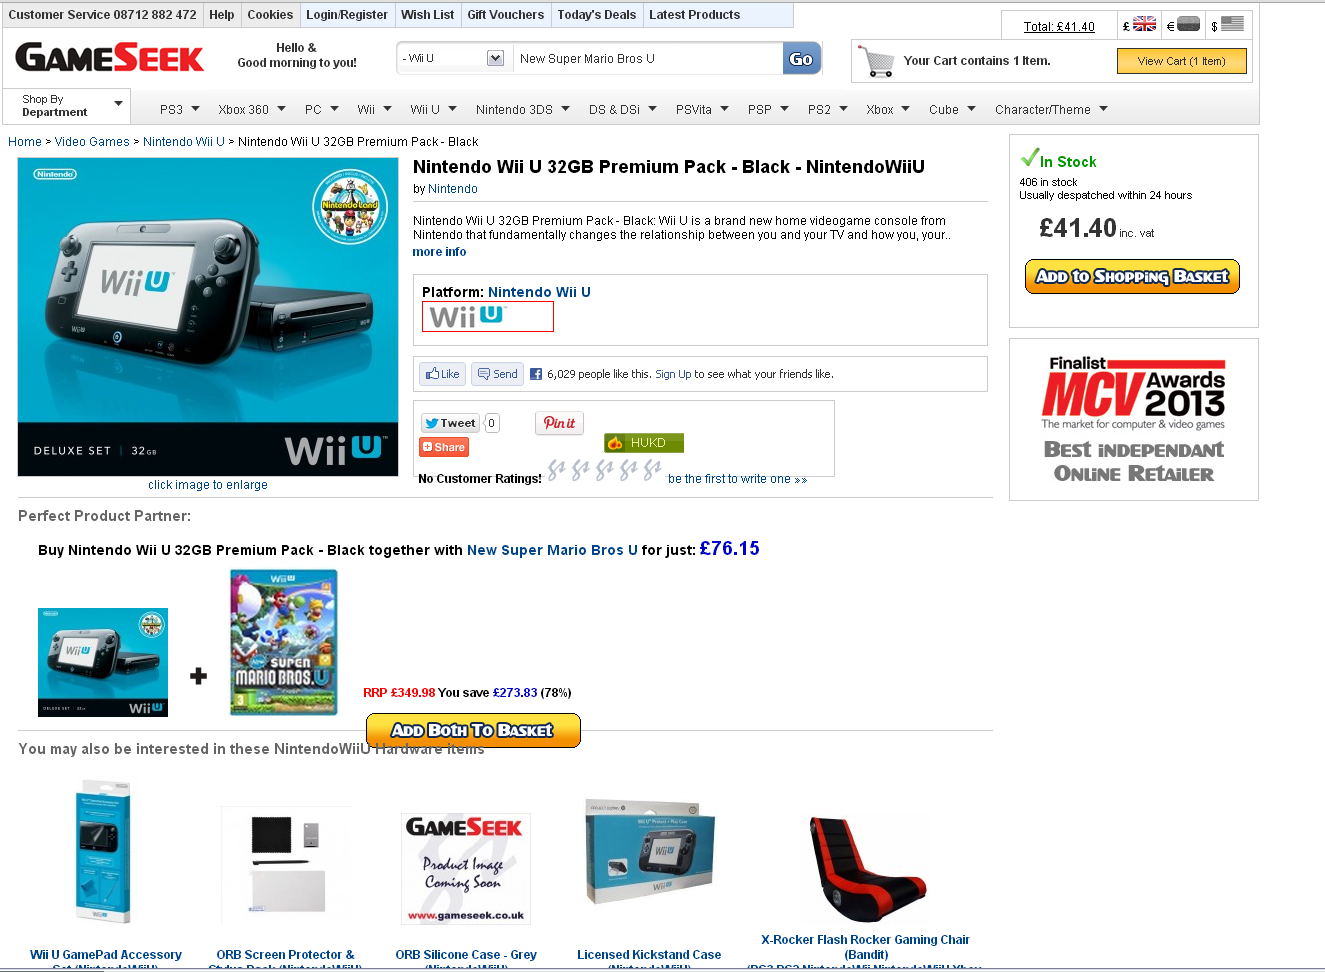 Quick grab this cheap nintendo wii u for only £41.40! Gameseek have some pricing errors on consoles again!